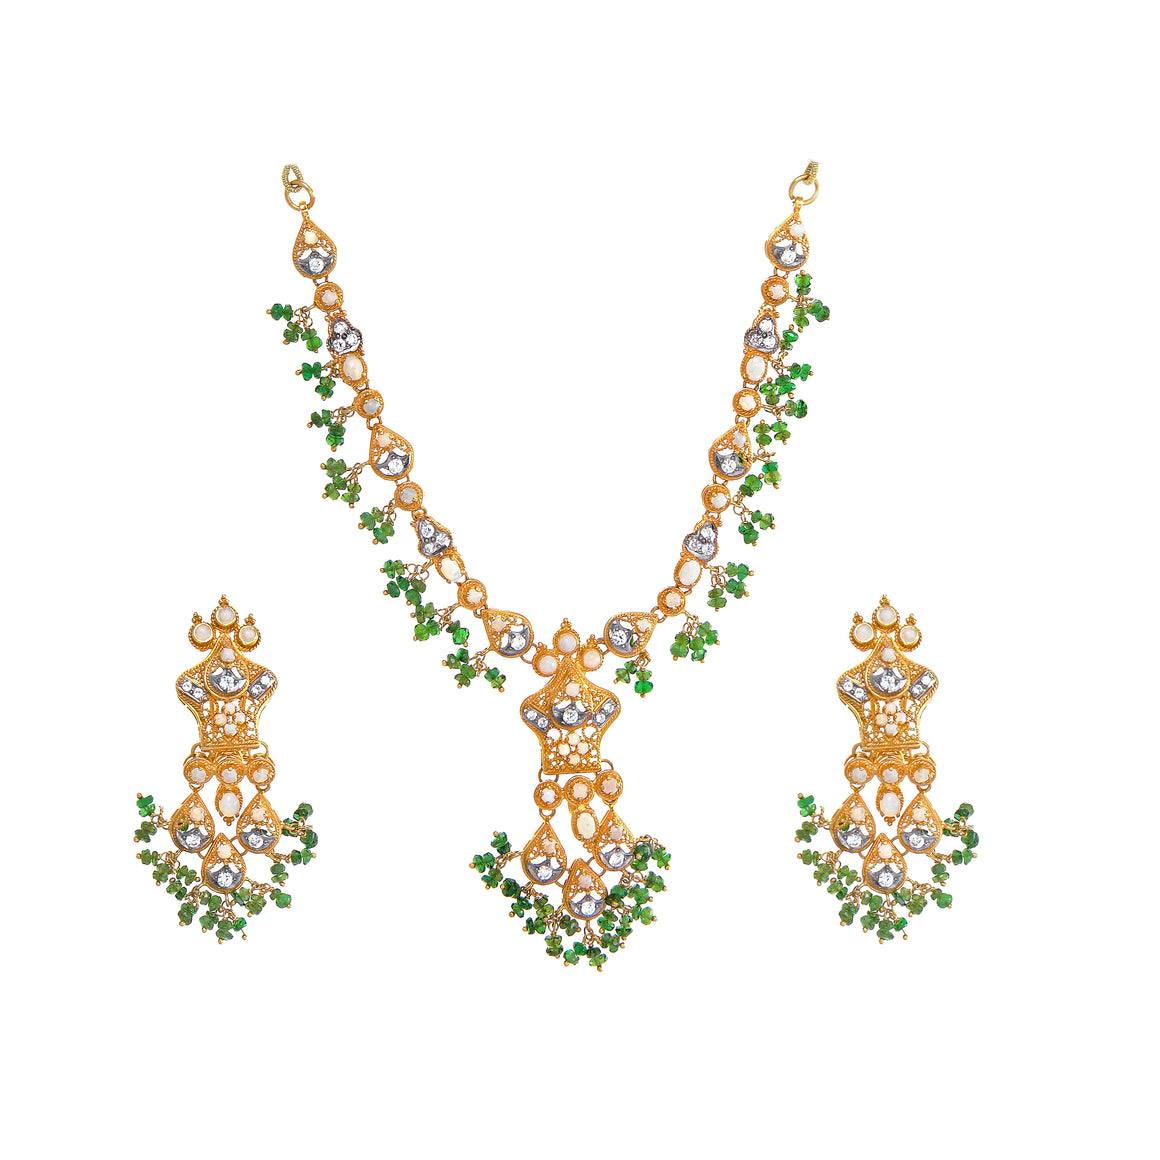 Ornate Opal and Emerald Necklace Set made in 22k gold